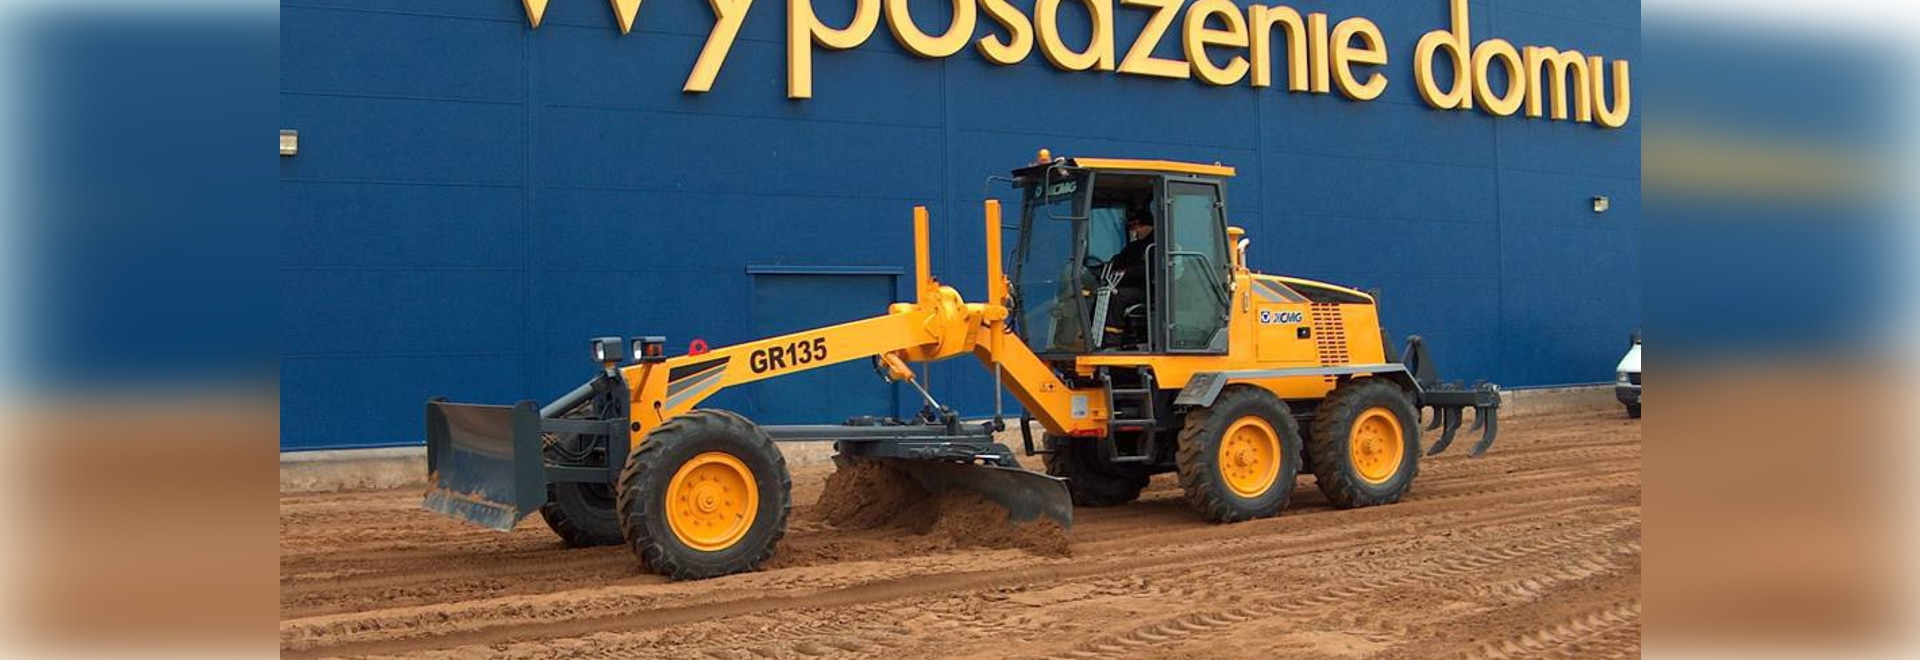 Construction of XCMG GR135 grader in Poland, Europe